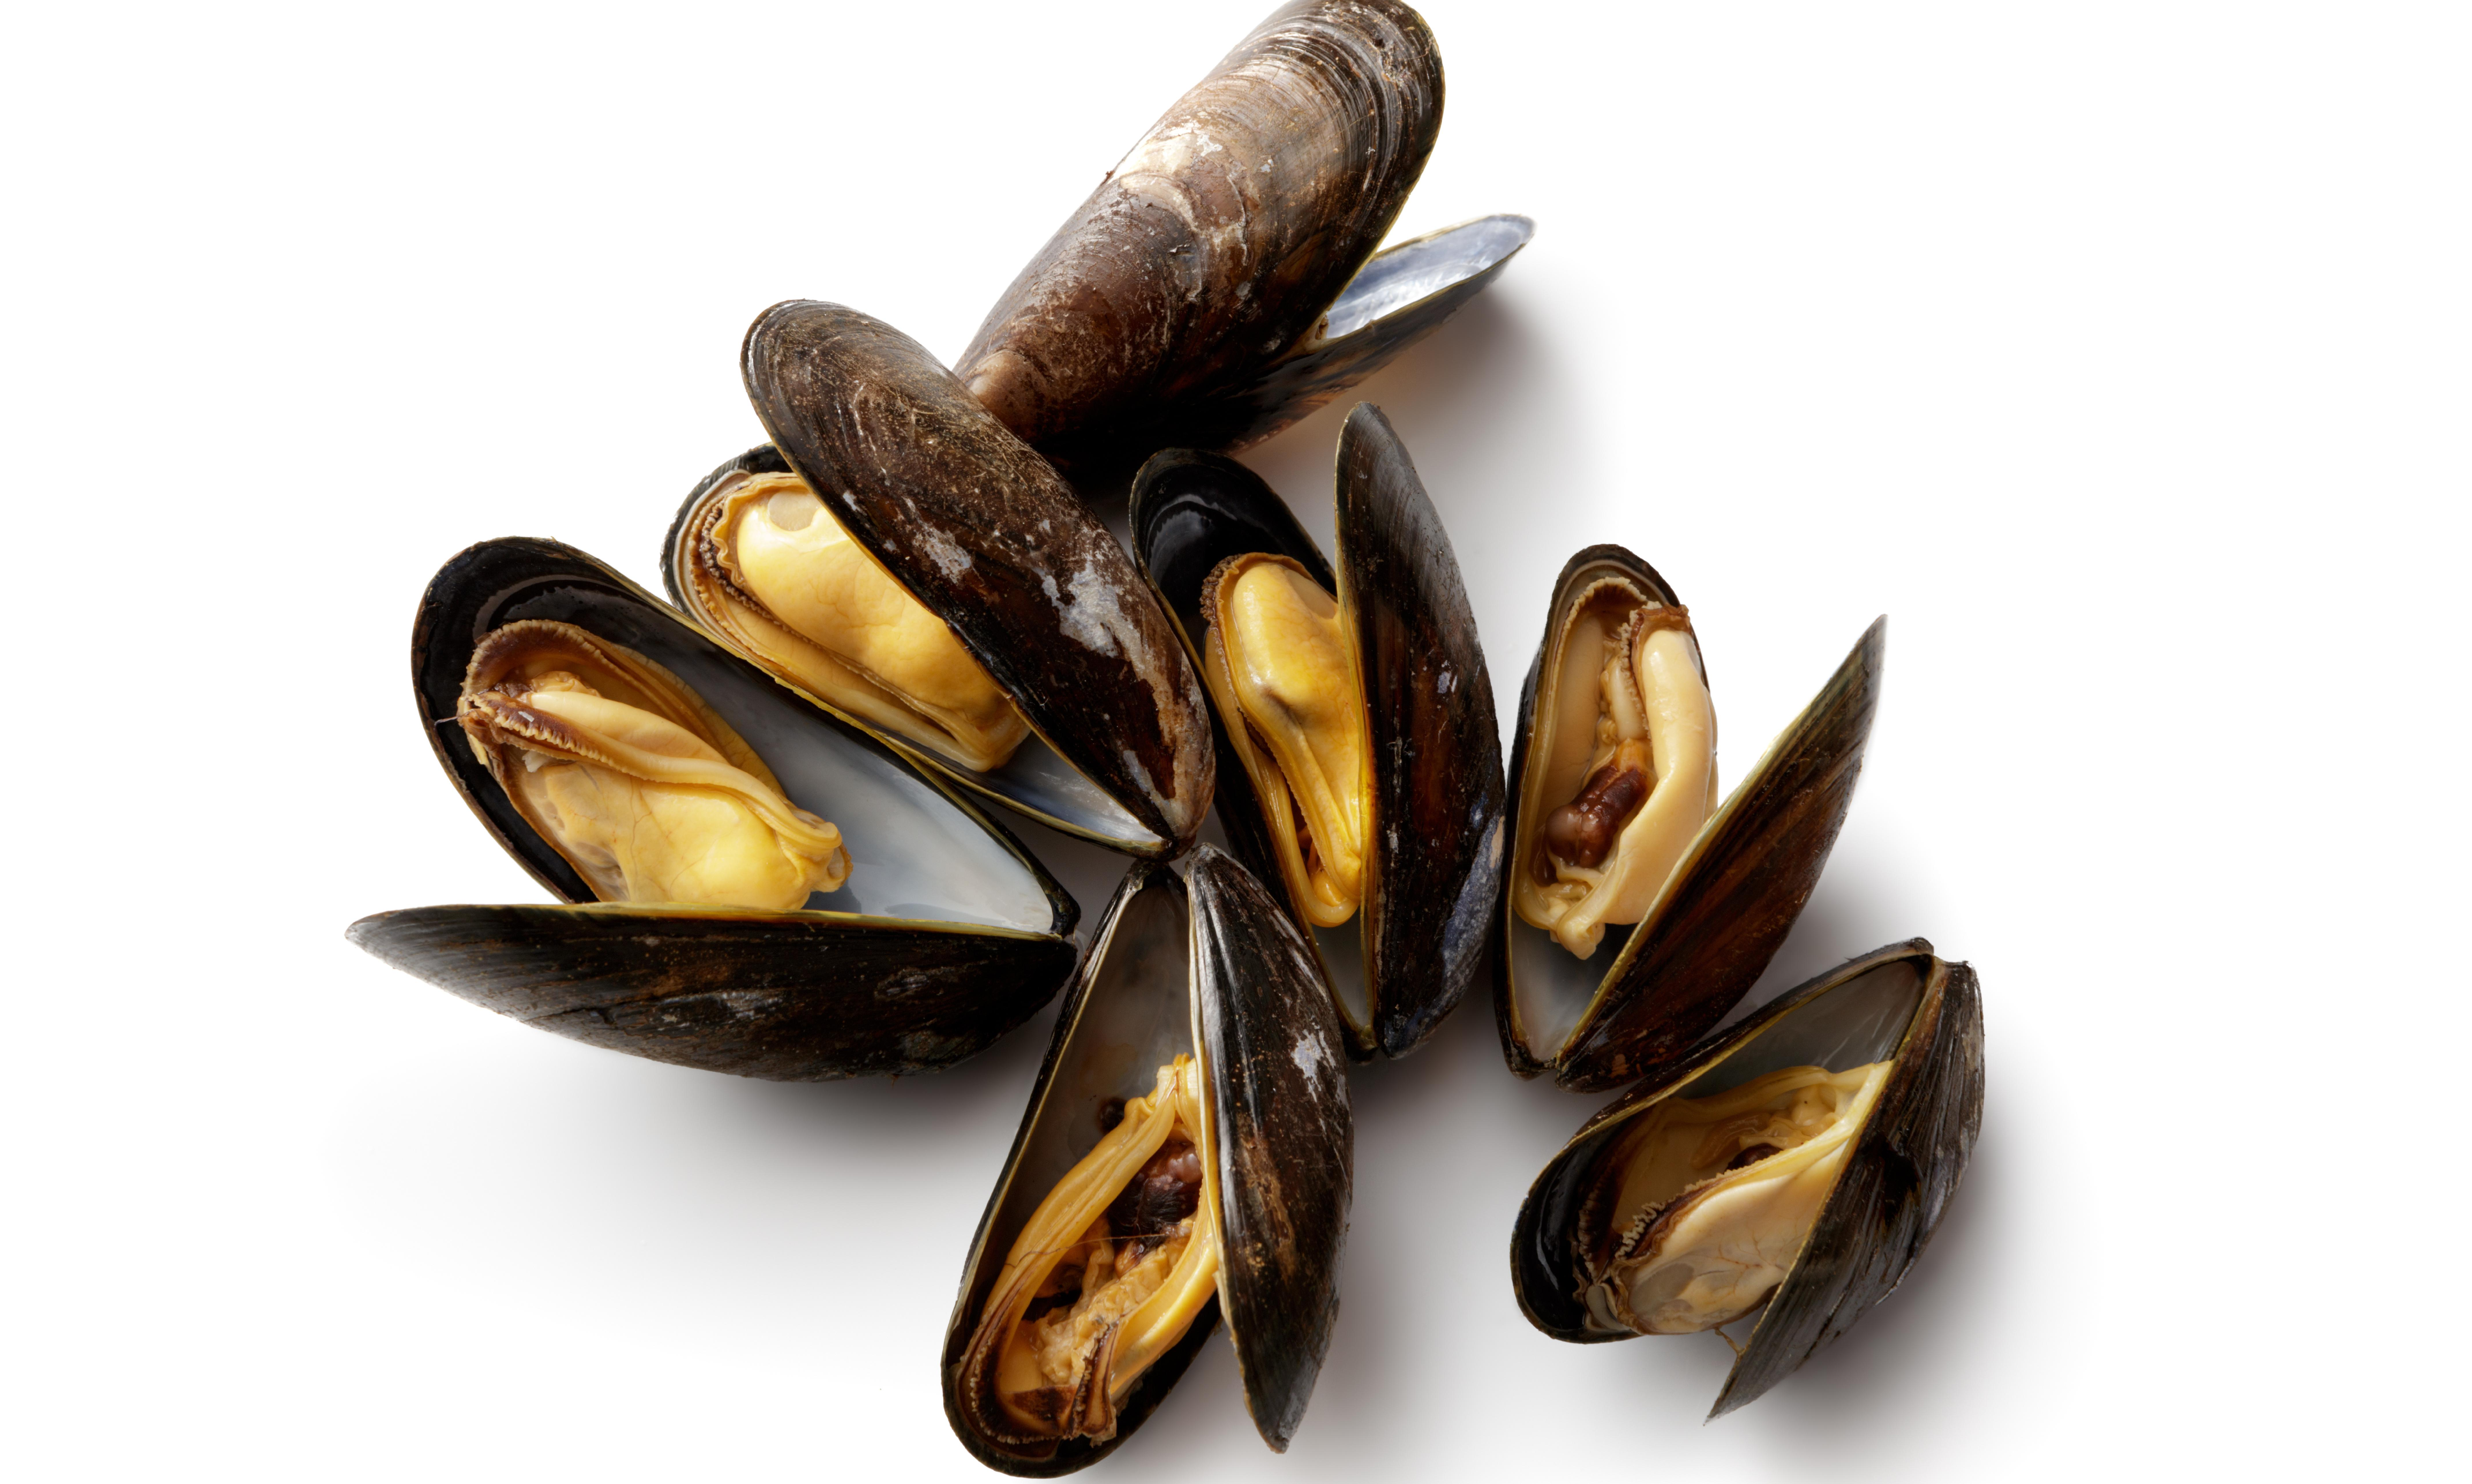 Hundreds of thousands of mussels cooked to death on New Zealand beach in heatwave